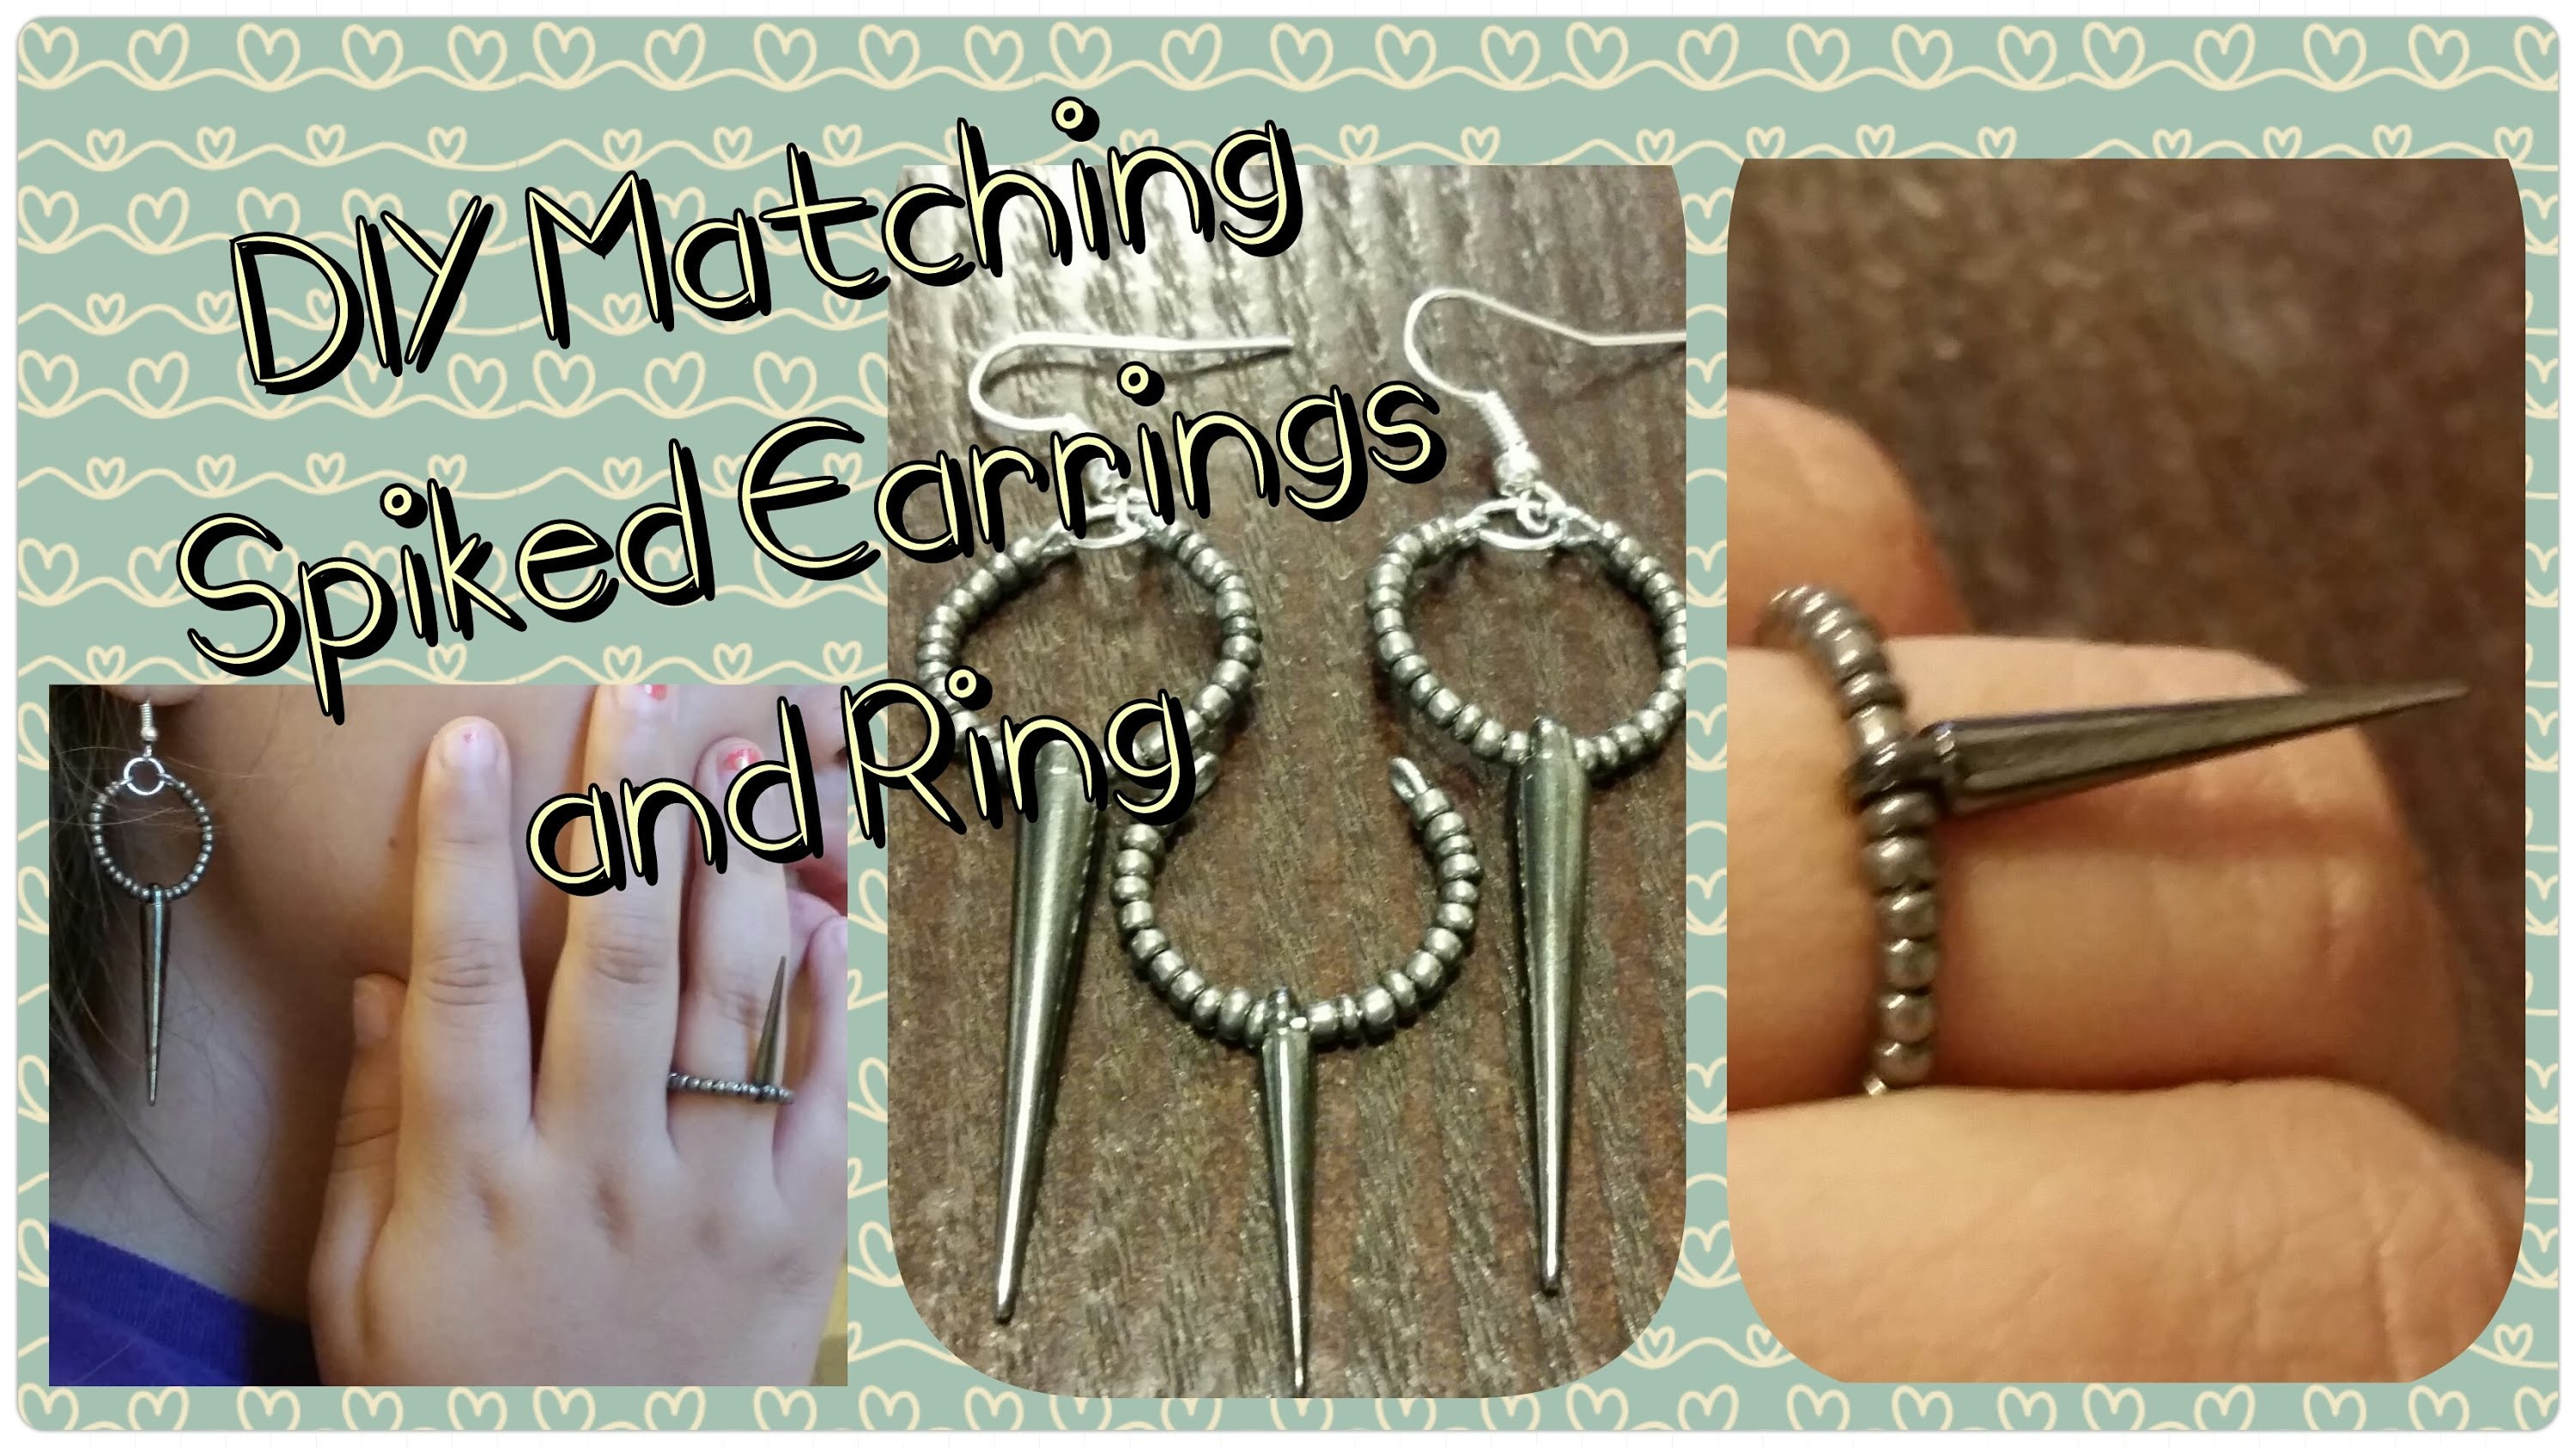 DIY Matching Spiked Earrings and Adjustable Ring